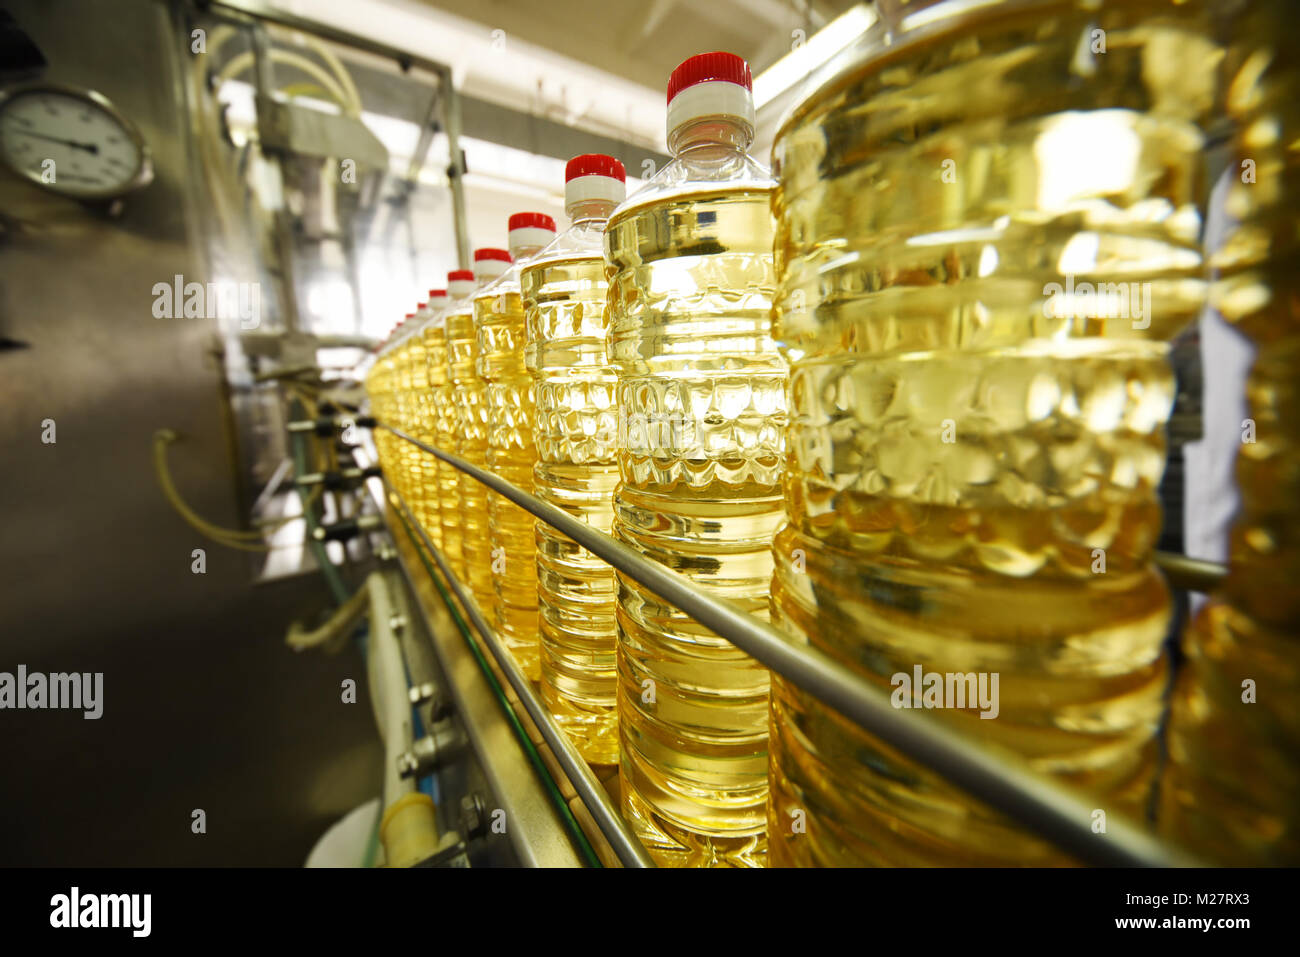 line or conveyor for food production of sunflower oil. Bottles with vegetable oil close-up against the background - Stock Image